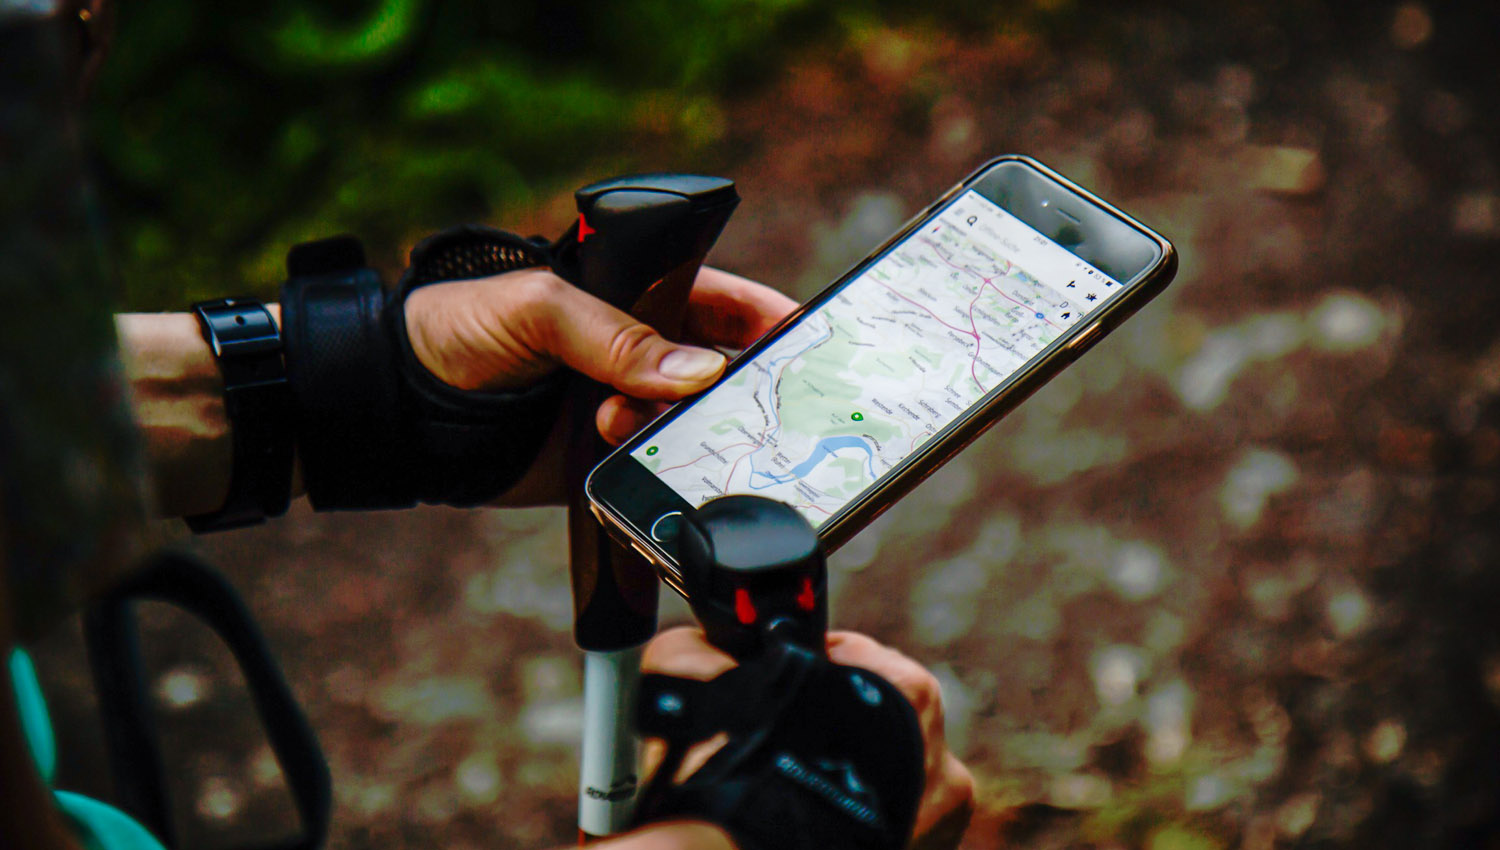 Offline maps can be a godsend for travellers. Image:   StockSnap